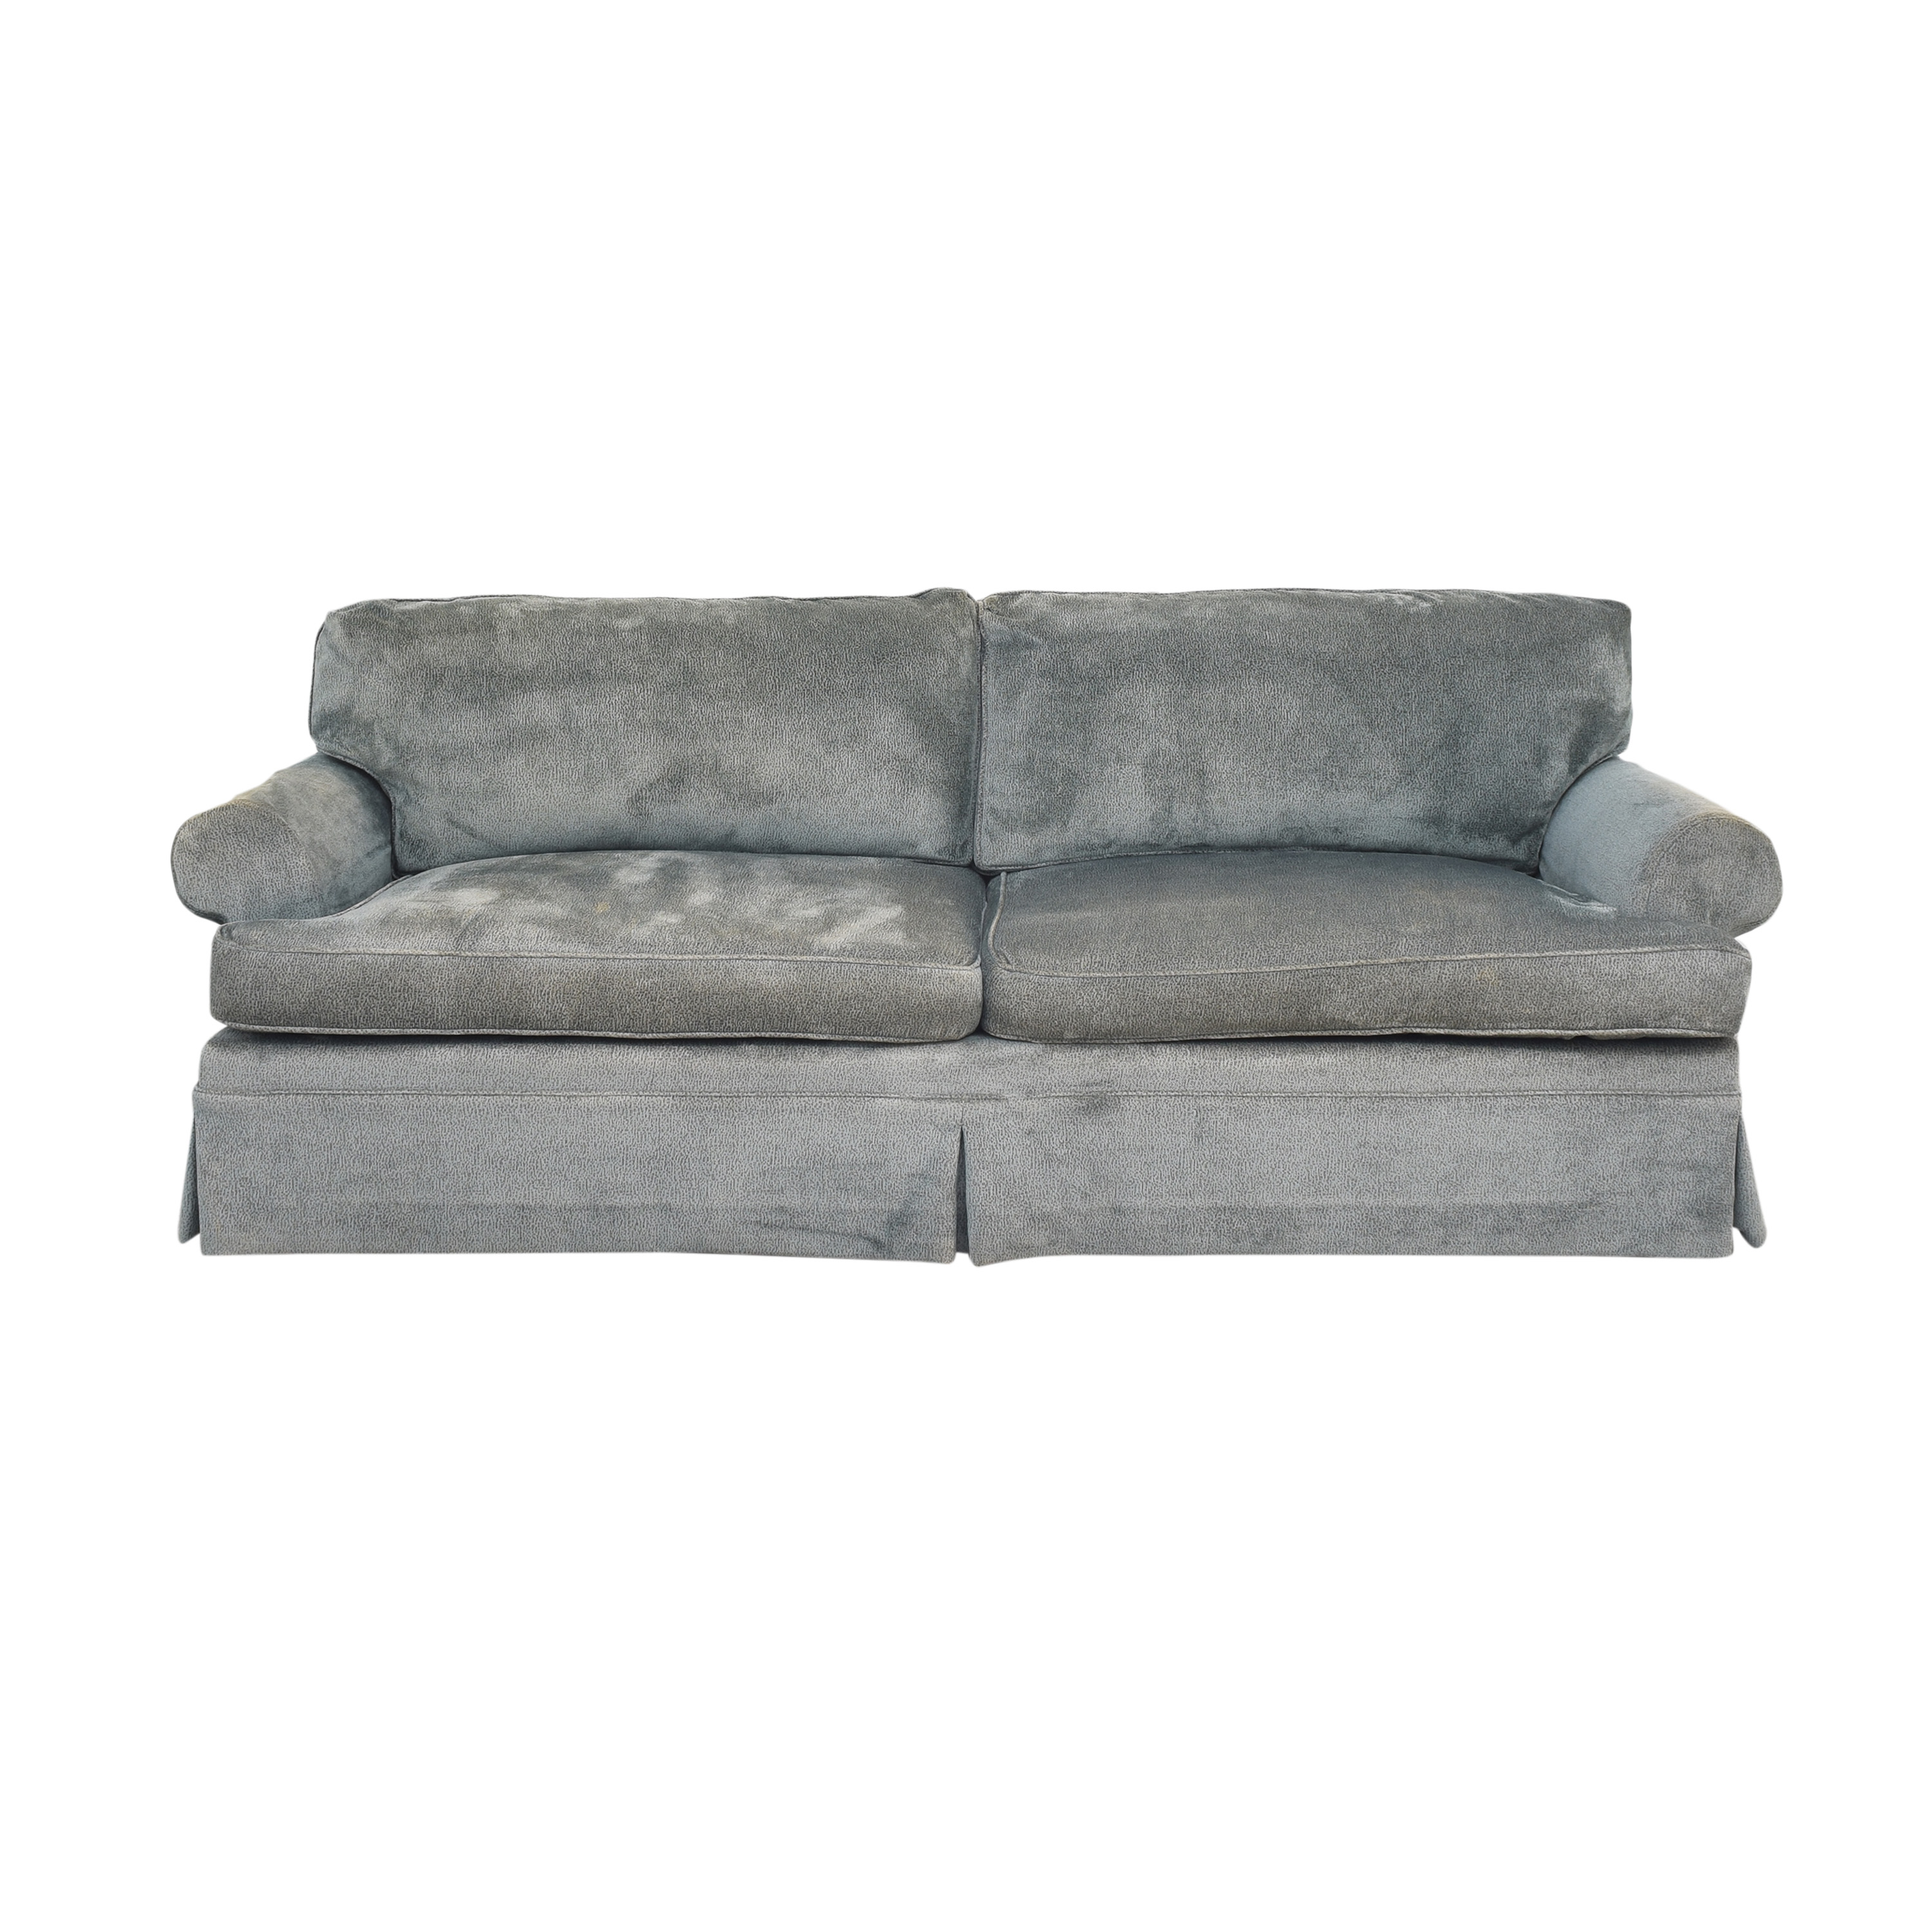 Baker Furniture Baker Furniture Skirted Sofa dimensions